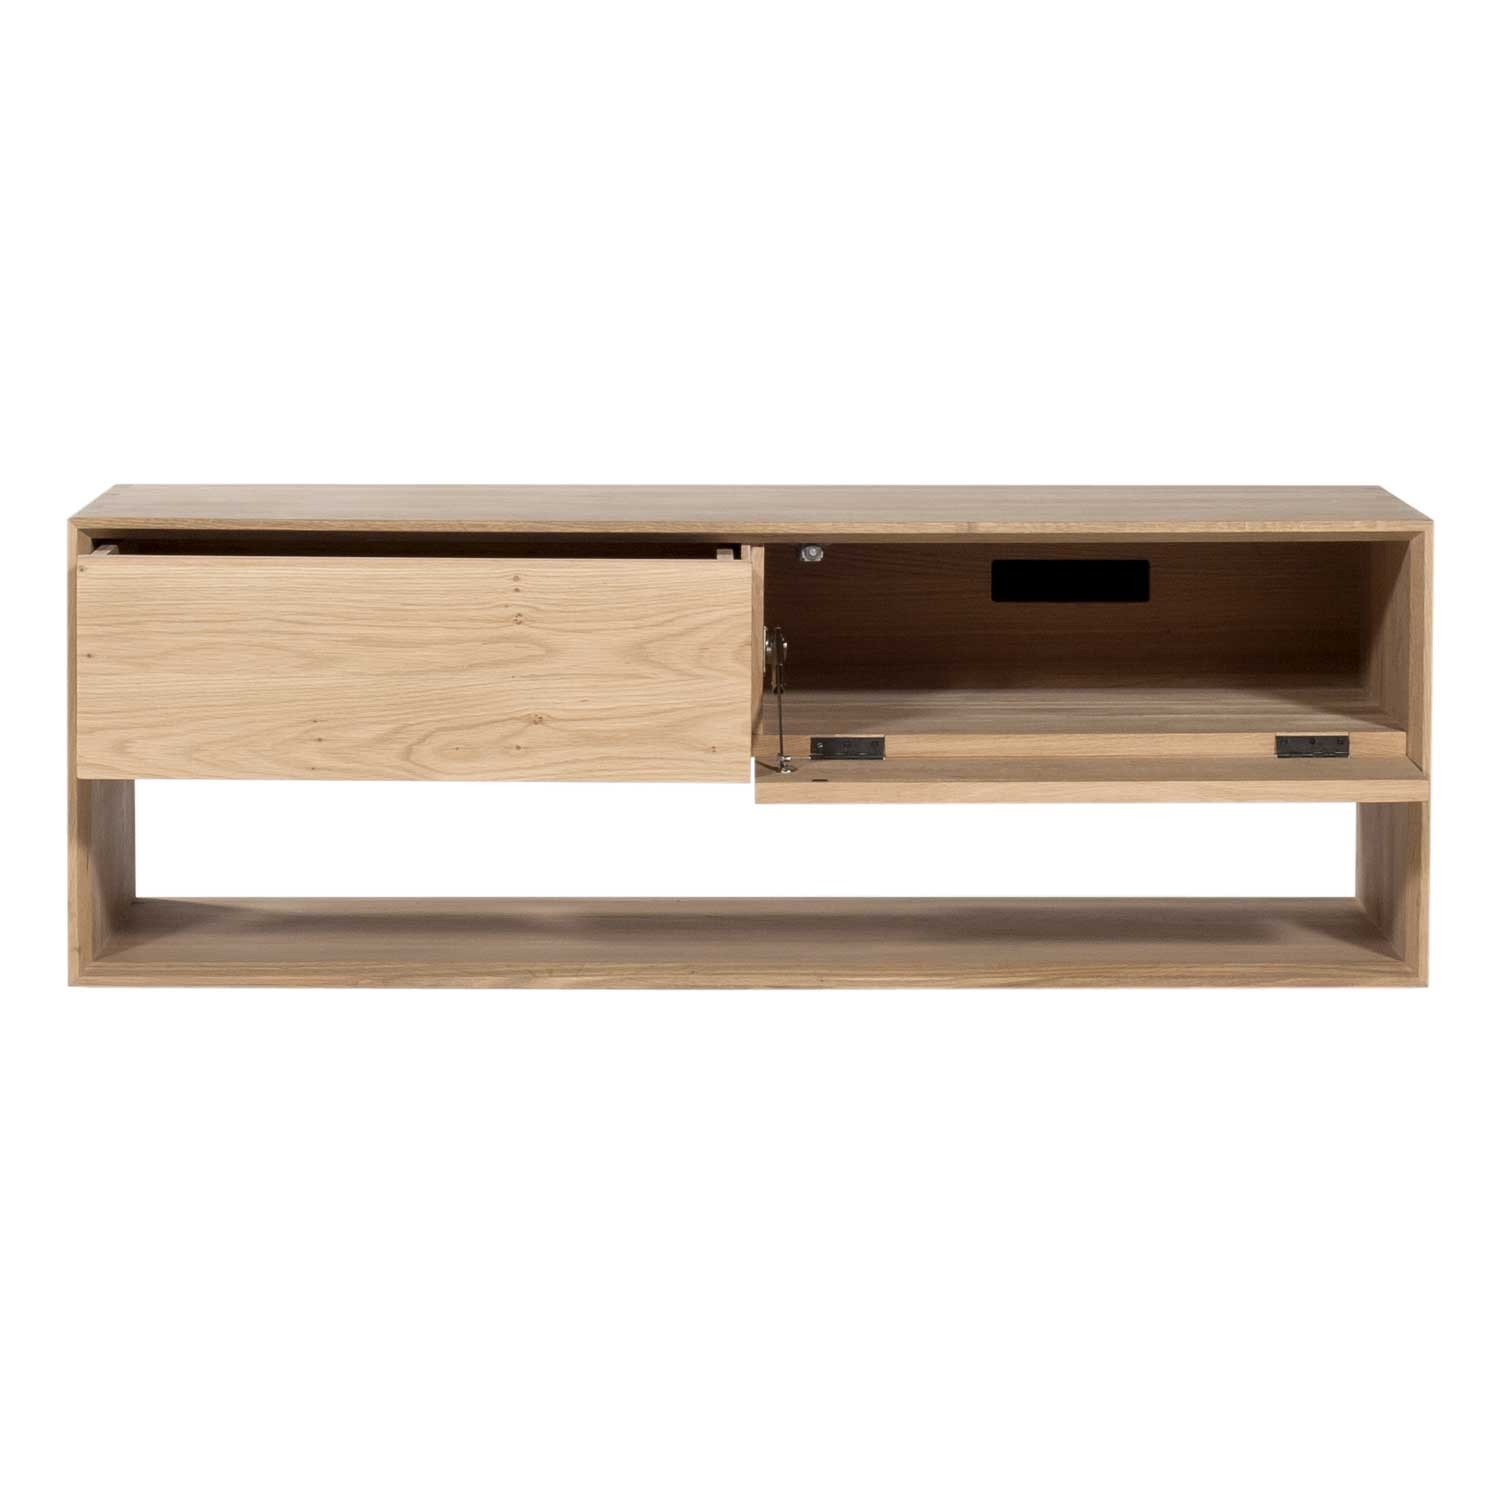 oak-nordic-tv-unit